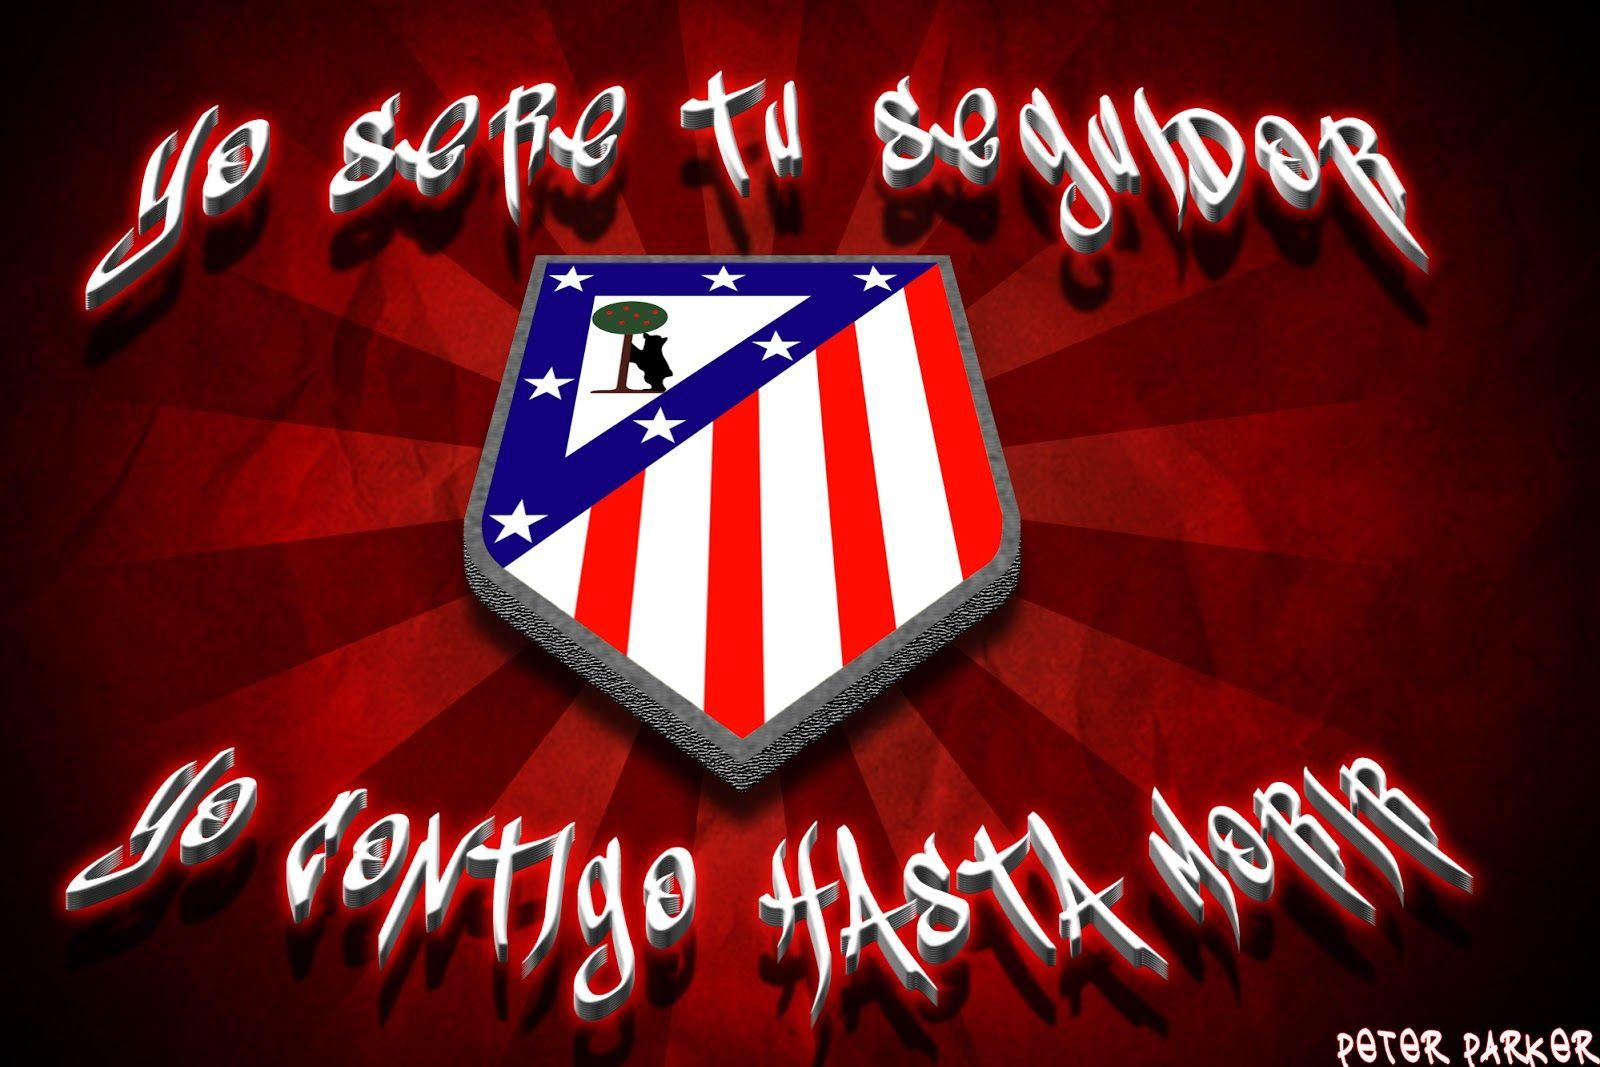 World Cup: Atletico Madrid's Wallpaper - Sept